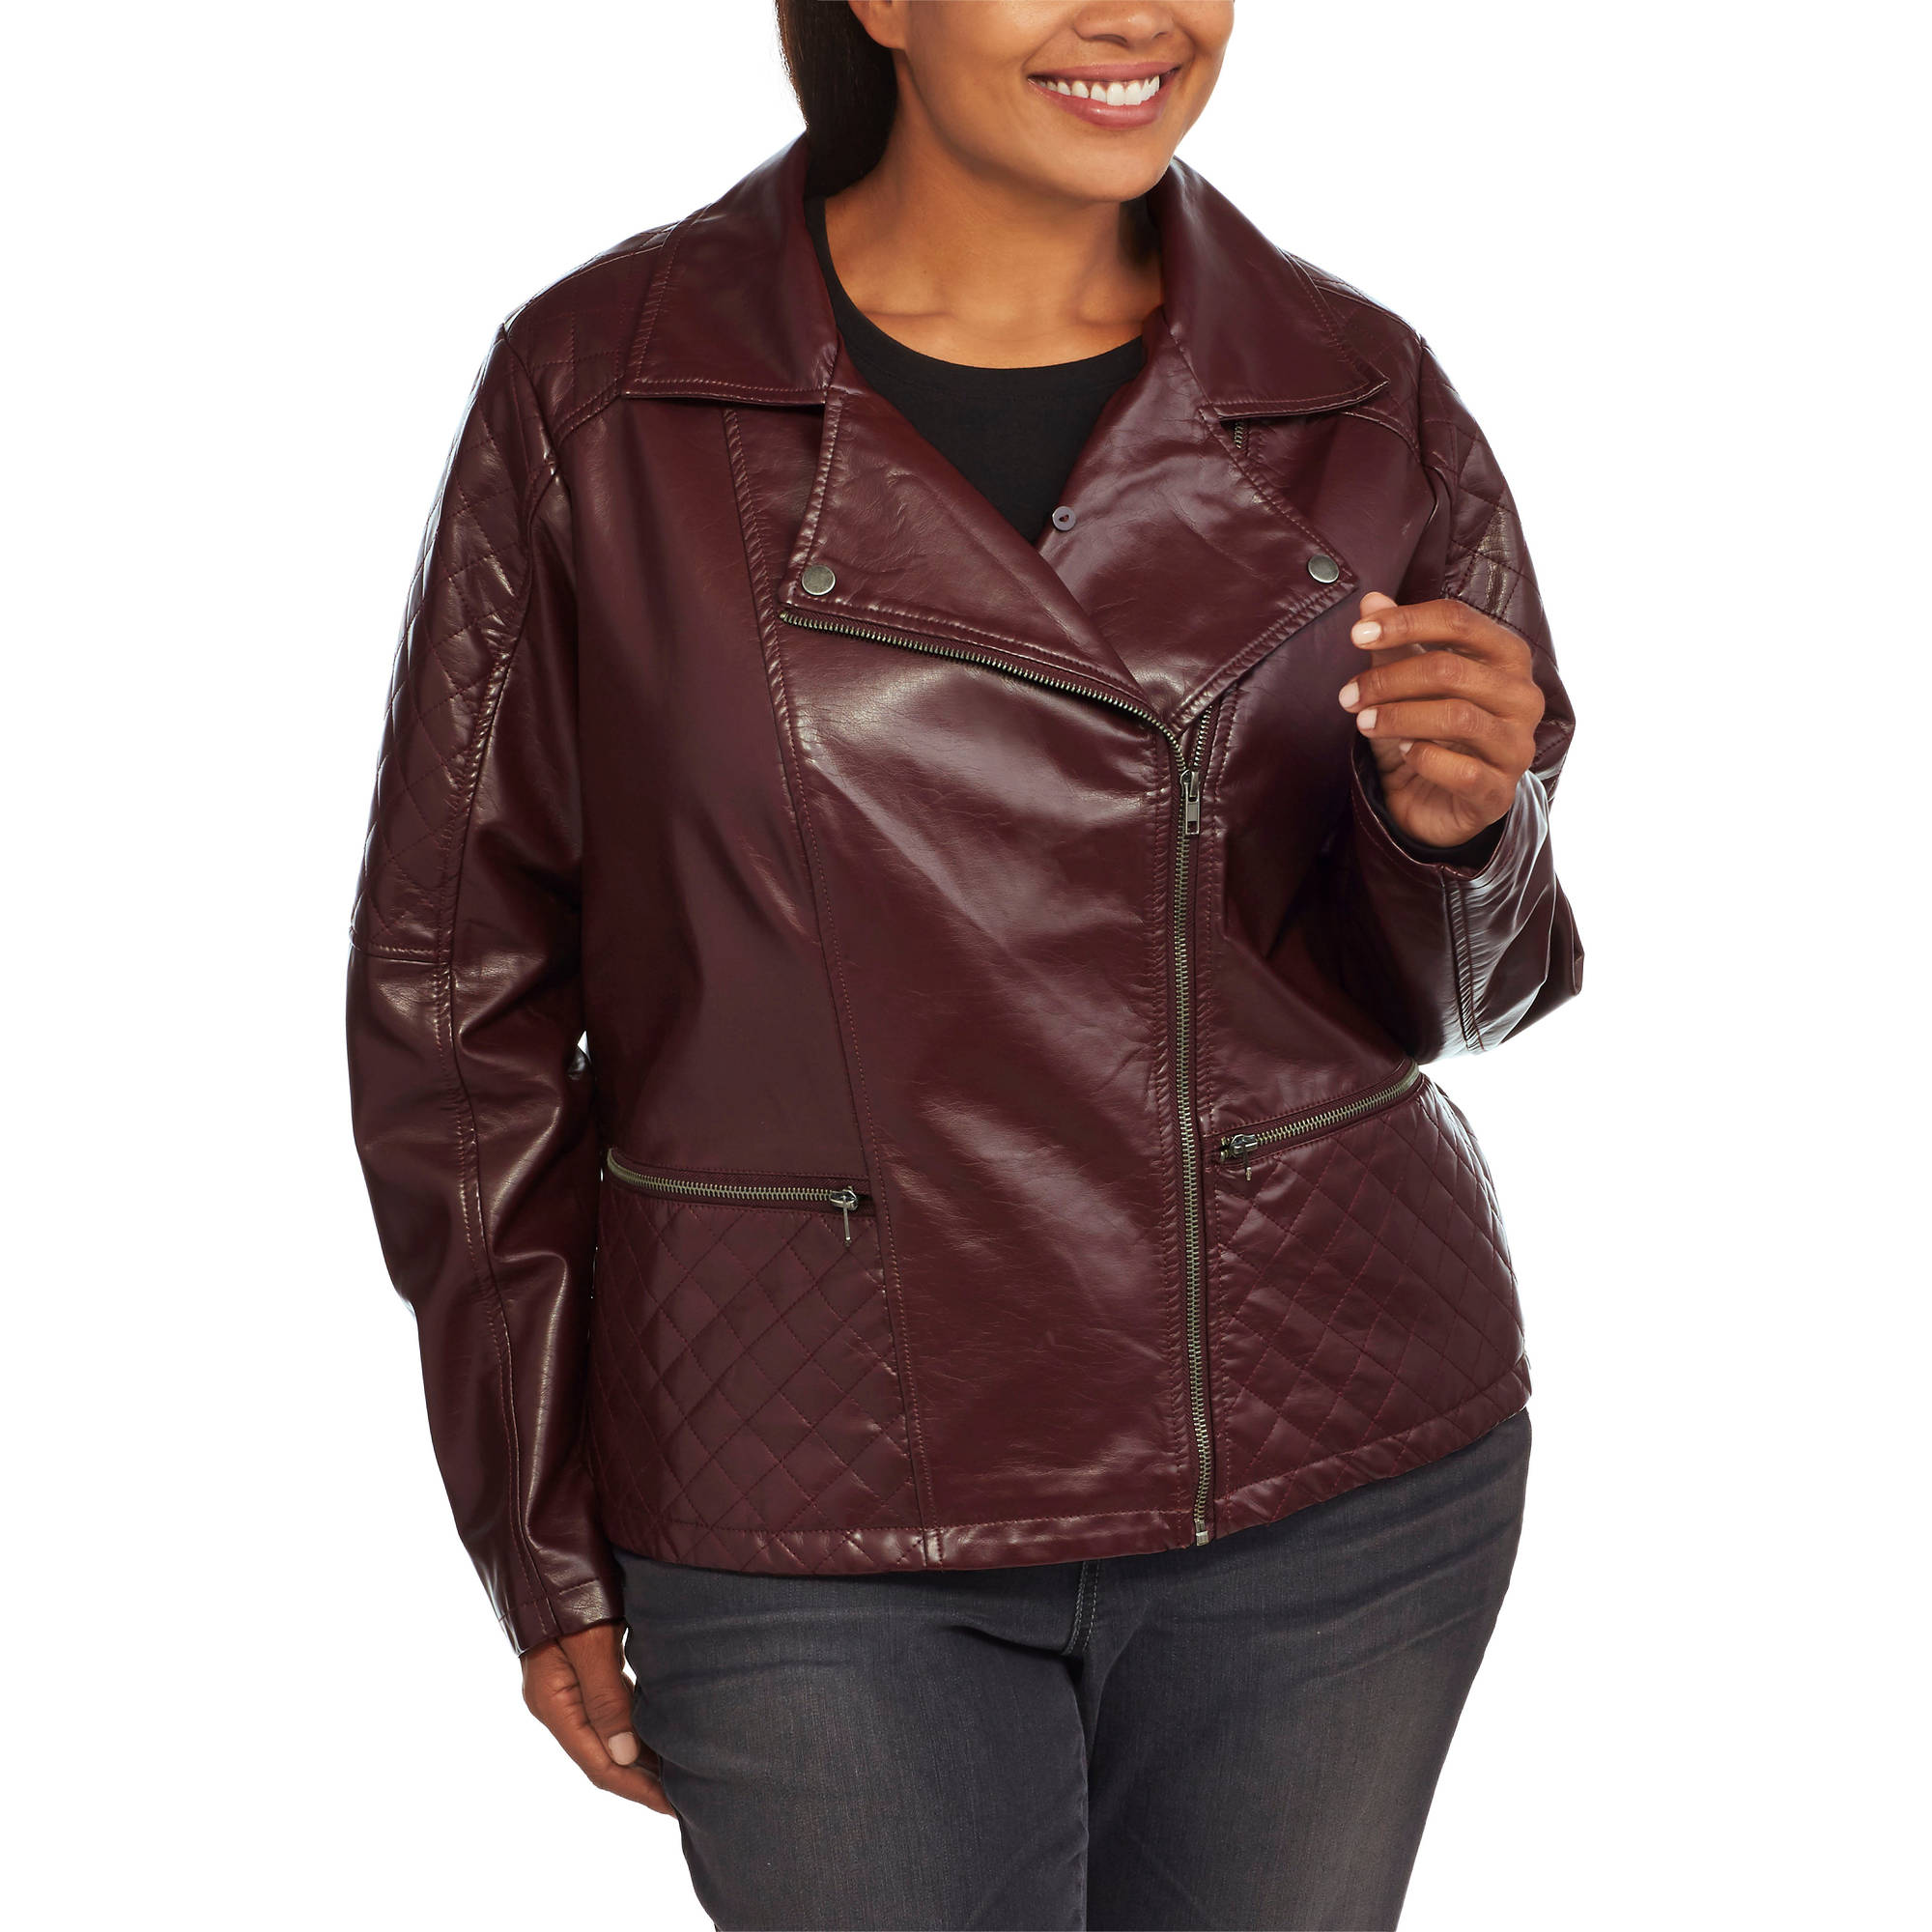 Maxwell Studio Women's Plus-Size Faux Leather Moto Jacket With Removable Fur Collar